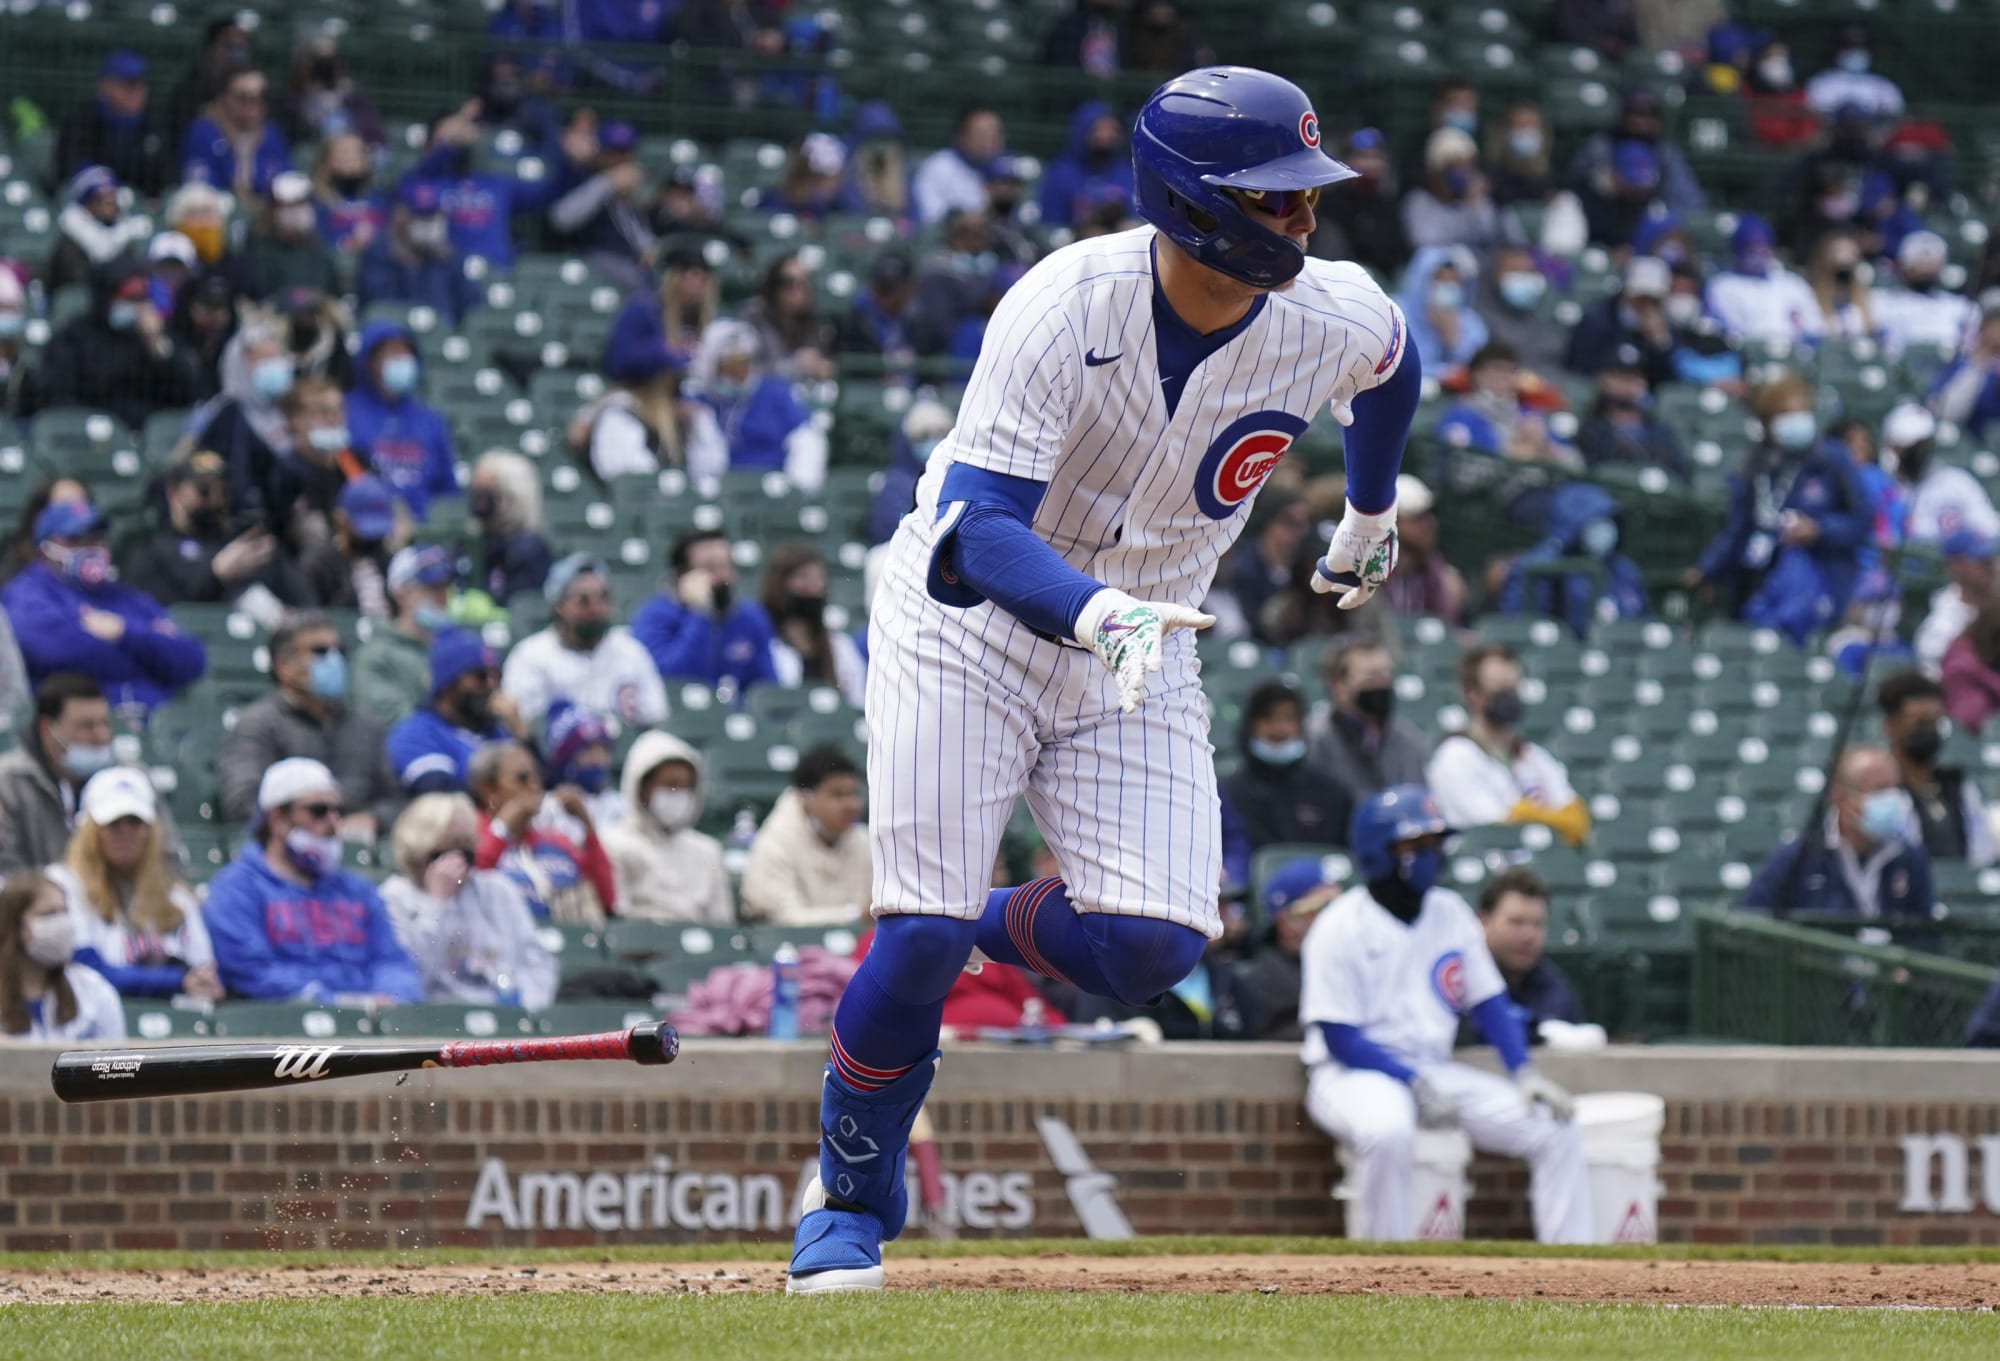 Cubs: Joc Pederson is slowly but surely starting to find his groove